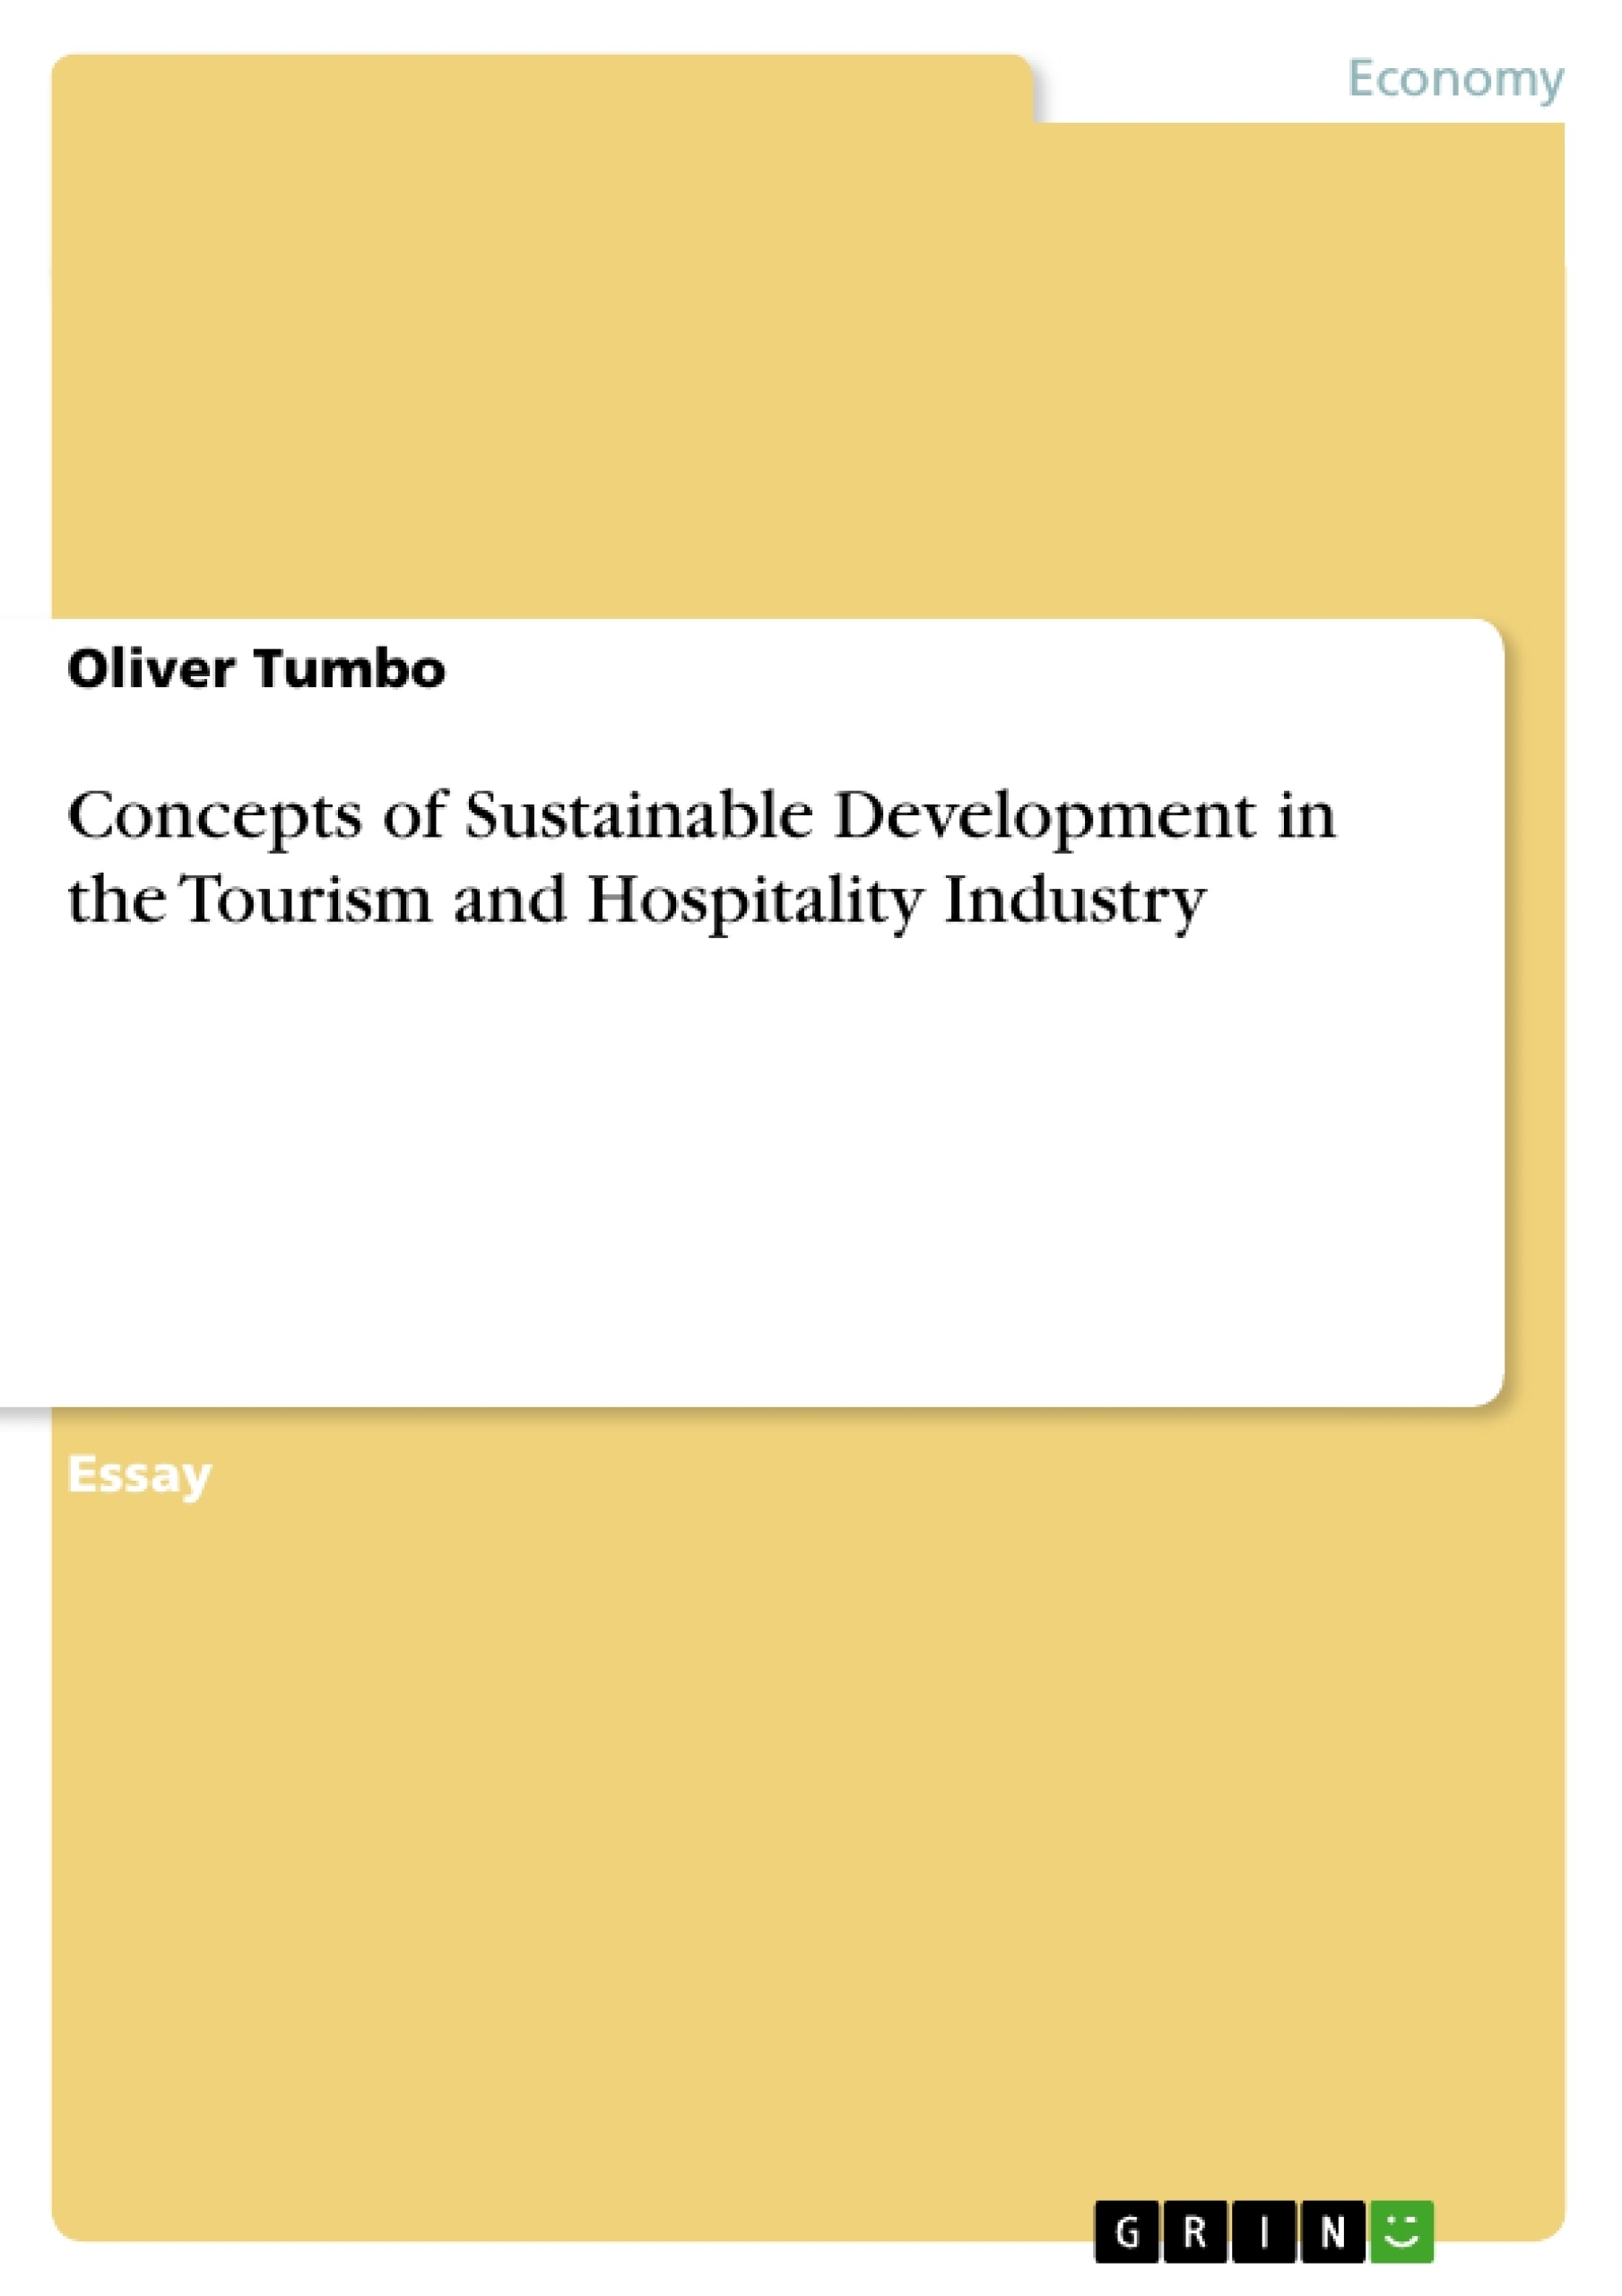 sustainable development essay concepts of sustainable development  concepts of sustainable development in the tourism and hospitality concepts of sustainable development in the tourism